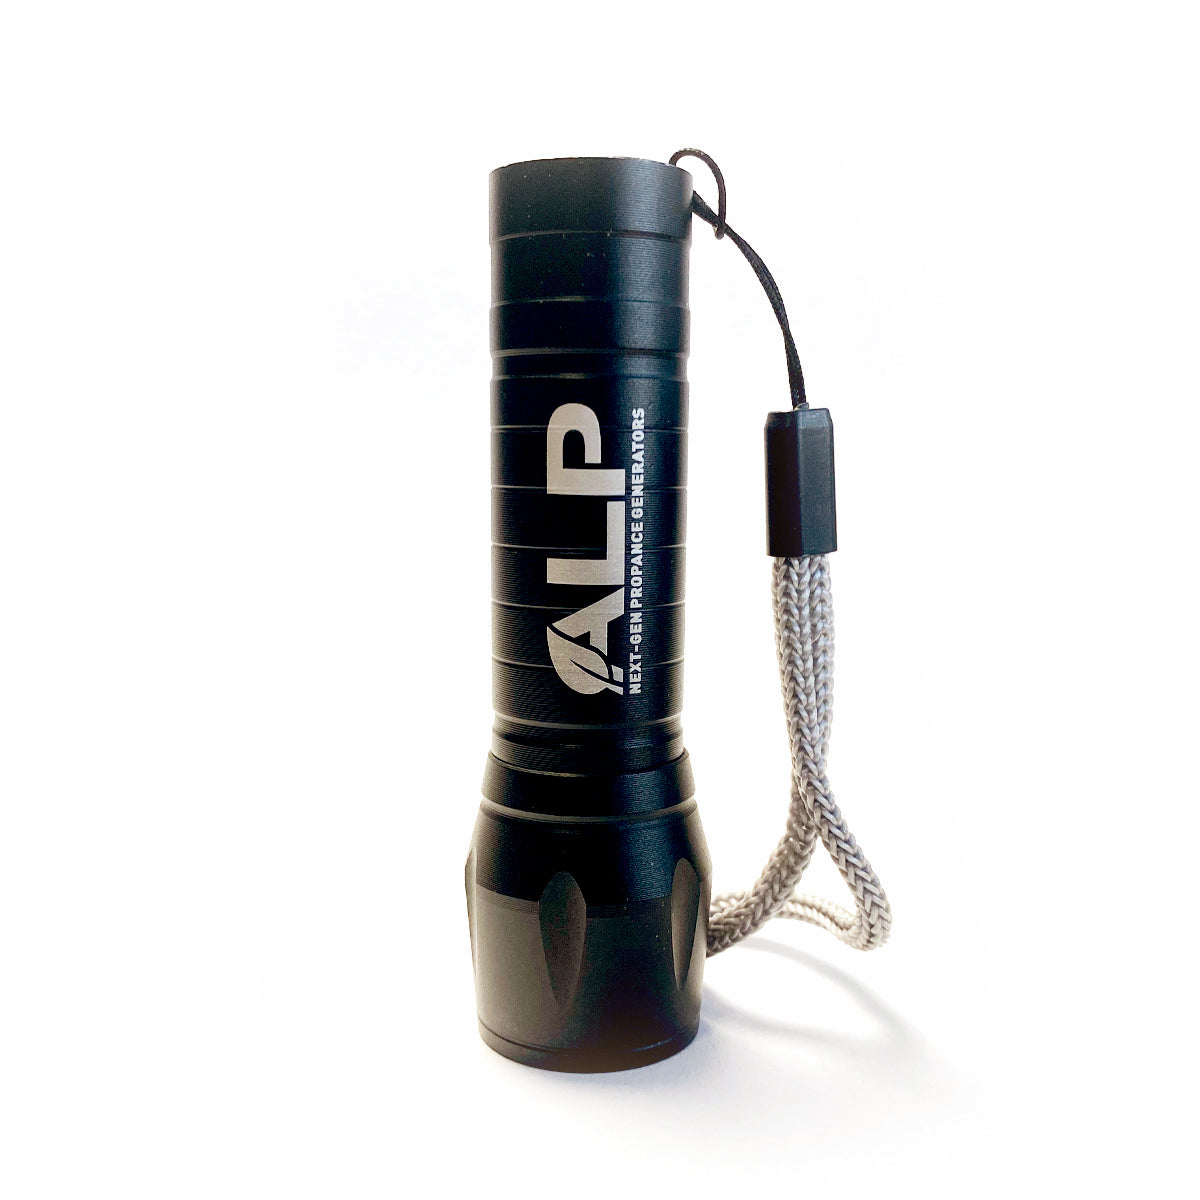 ALP Zoom USB Rechargeable Flashlight